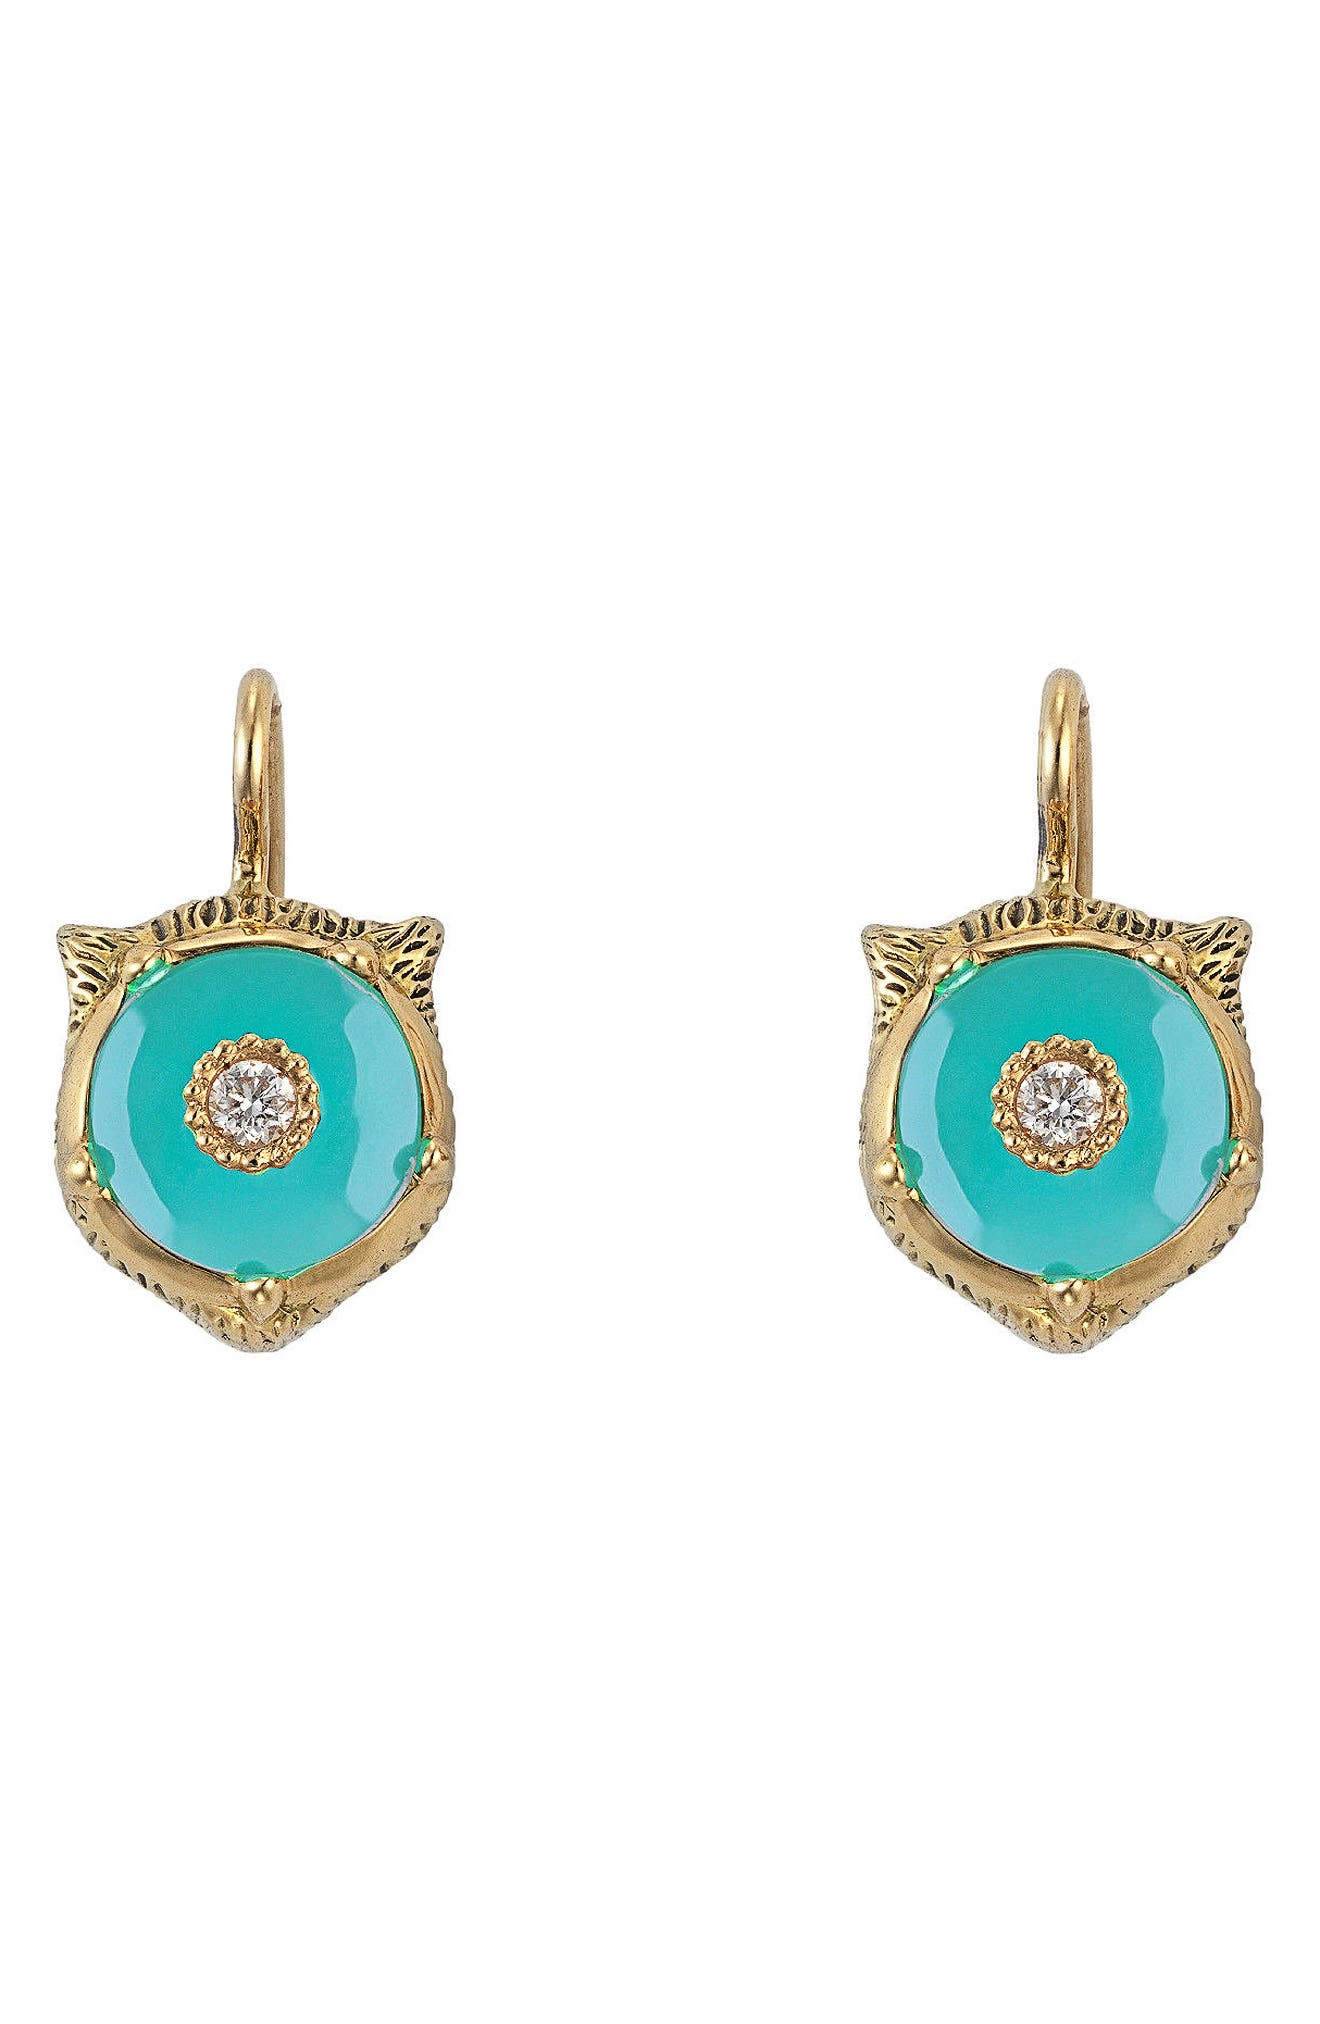 18K Yellow Gold Le Marche Des Merveilles Turquoise & Diamond Feline Drop Earrings in Yellow Gold/ Turquoise